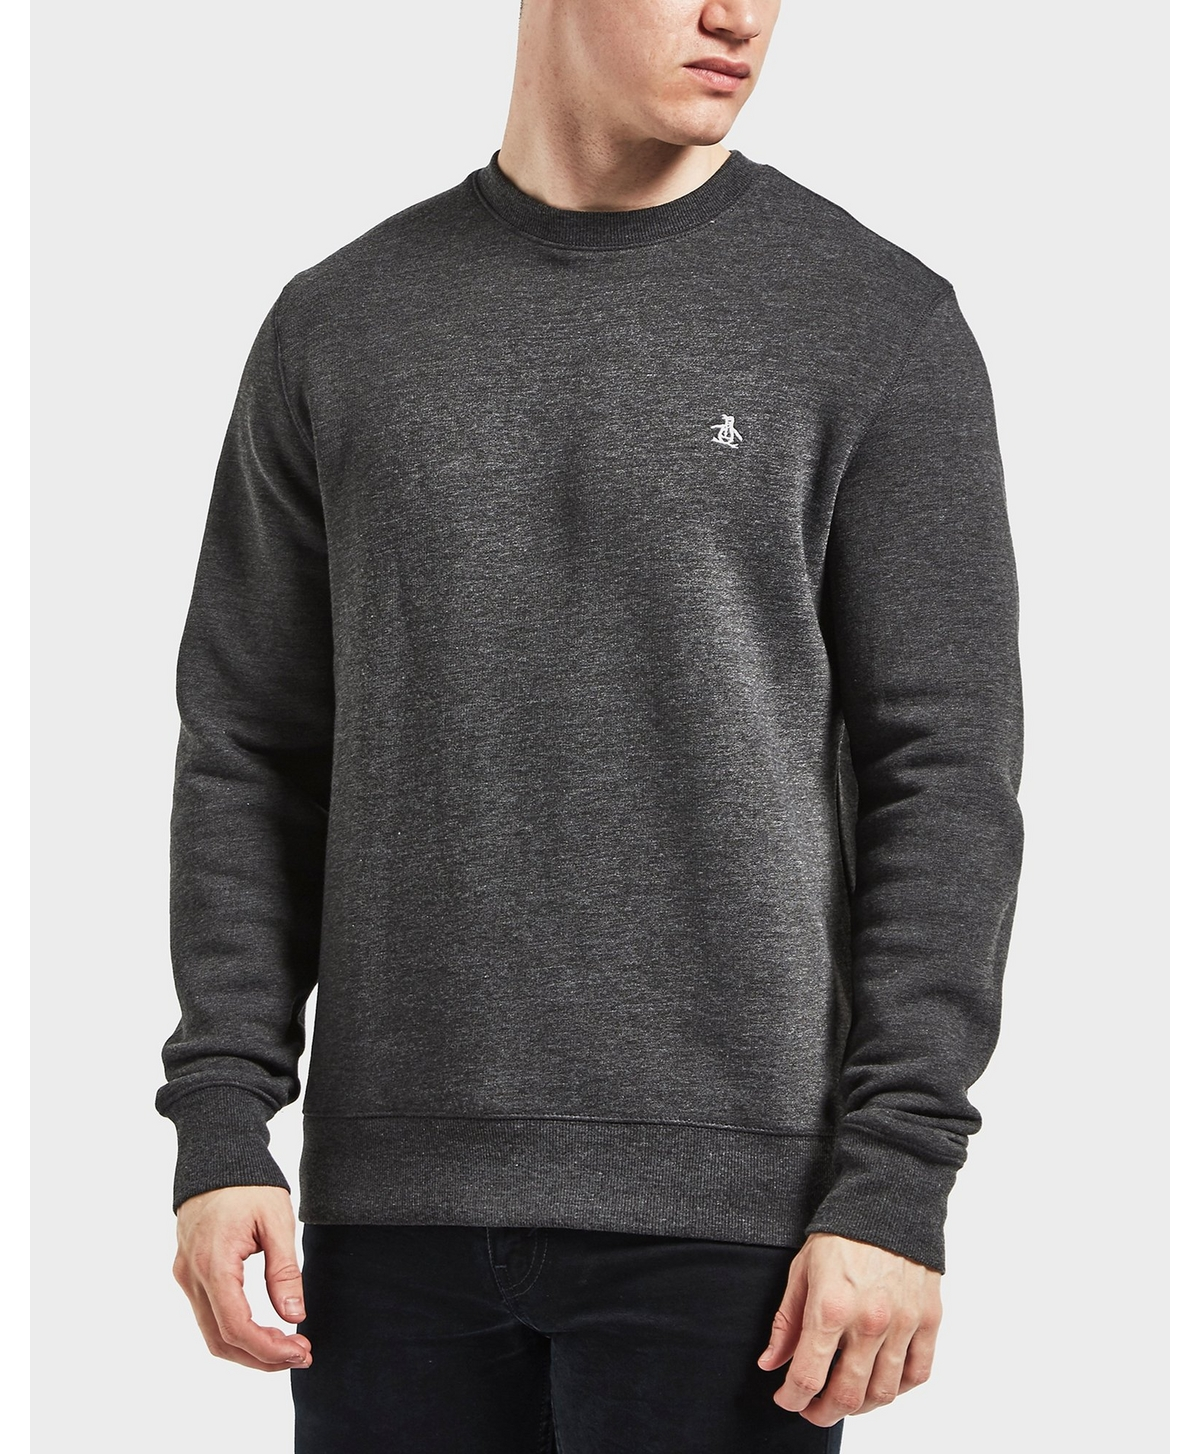 Original Penguin Crew Neck Sweatshirt